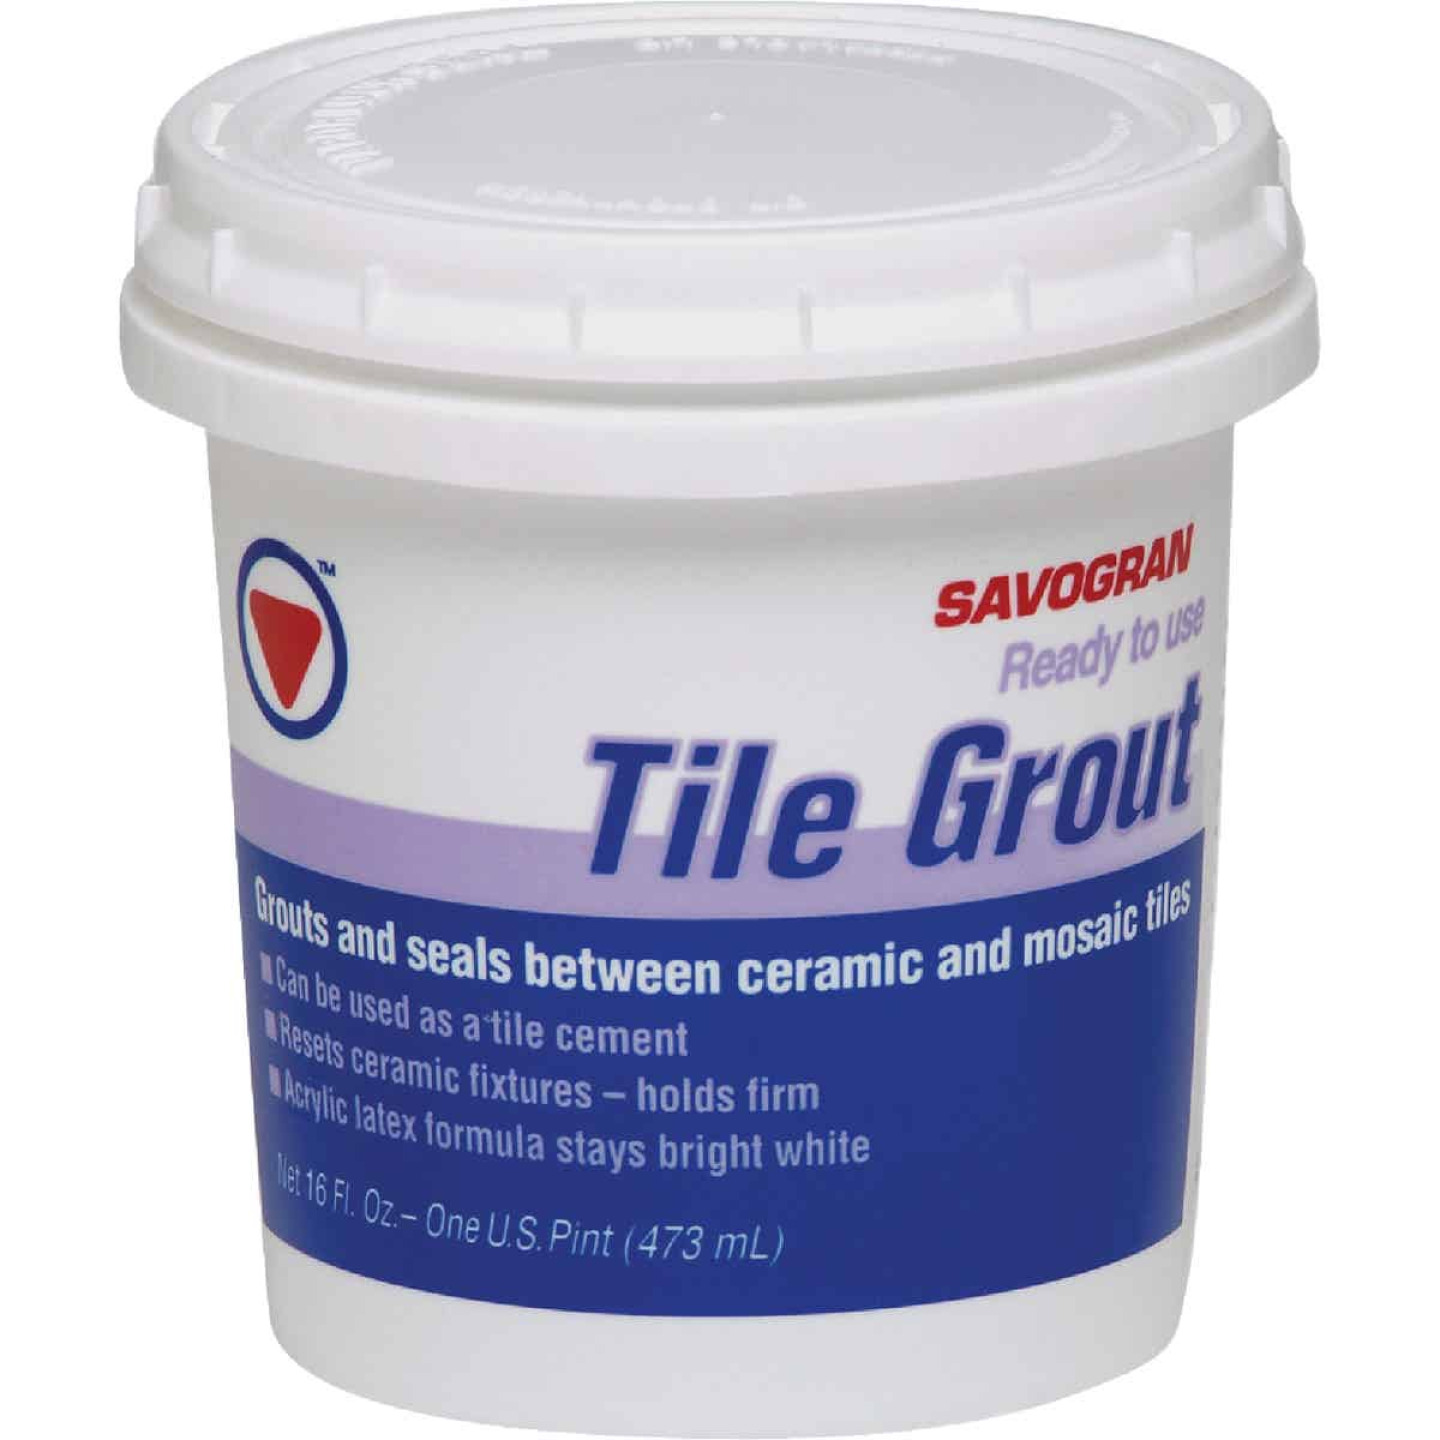 Savogran Pint Bright White Pre-Mixed Tile Grout Image 1